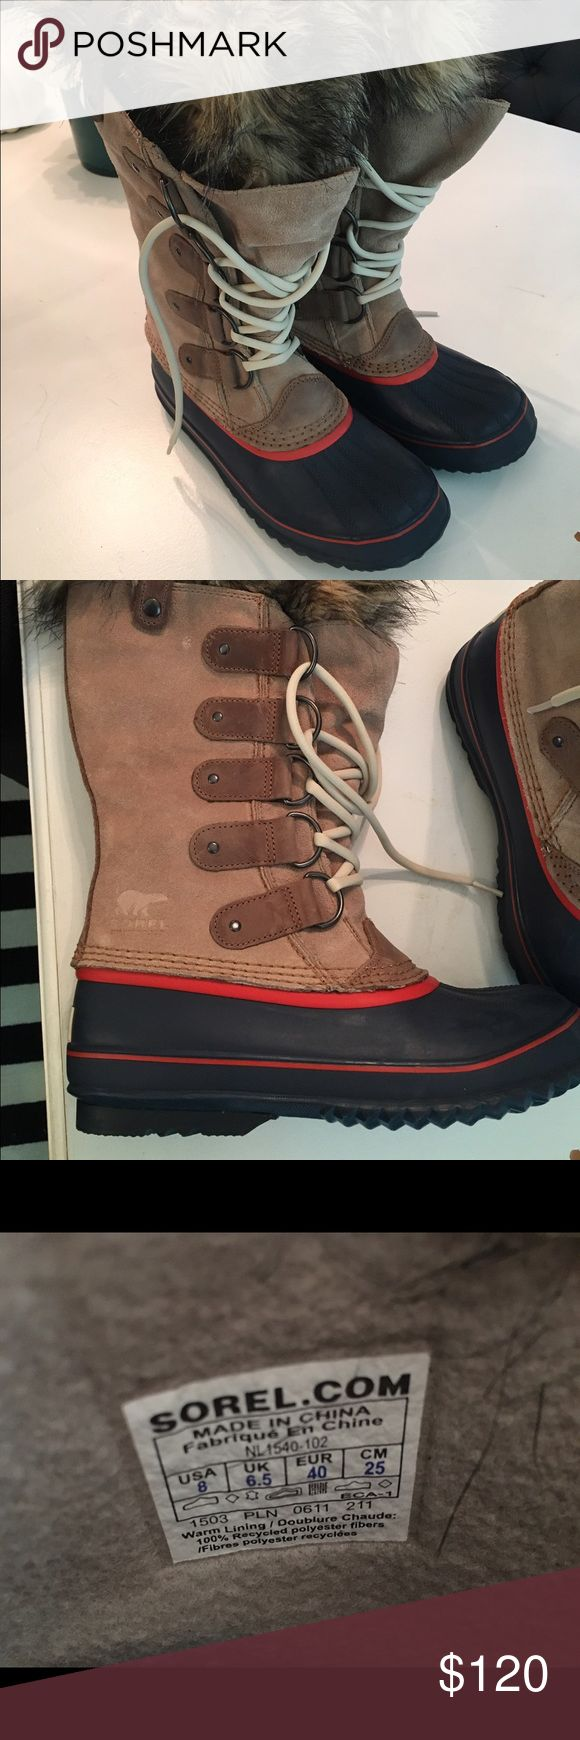 Sorel Joan of Arc Women's Boots Size 8 Perfect condition. Worn once. Retails $180. Size 8. Sorel Shoes Winter & Rain Boots